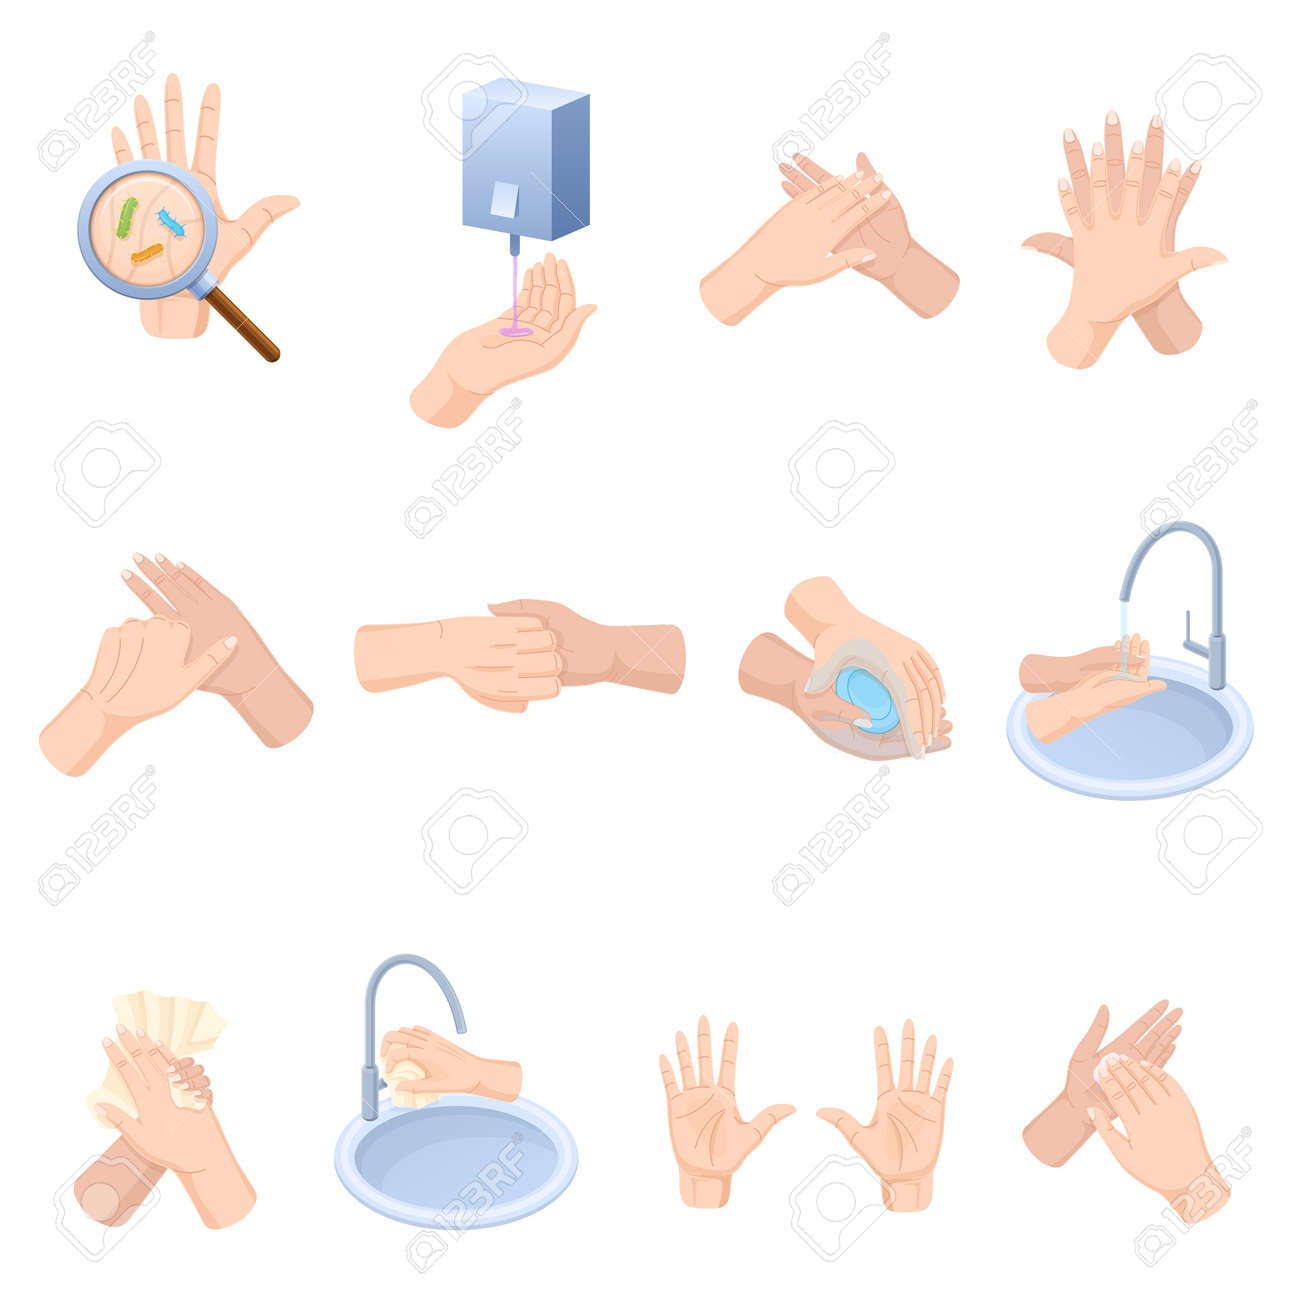 Stages proper care hands, washing, preventive maintenance of diseases, bacteria. - 94935732